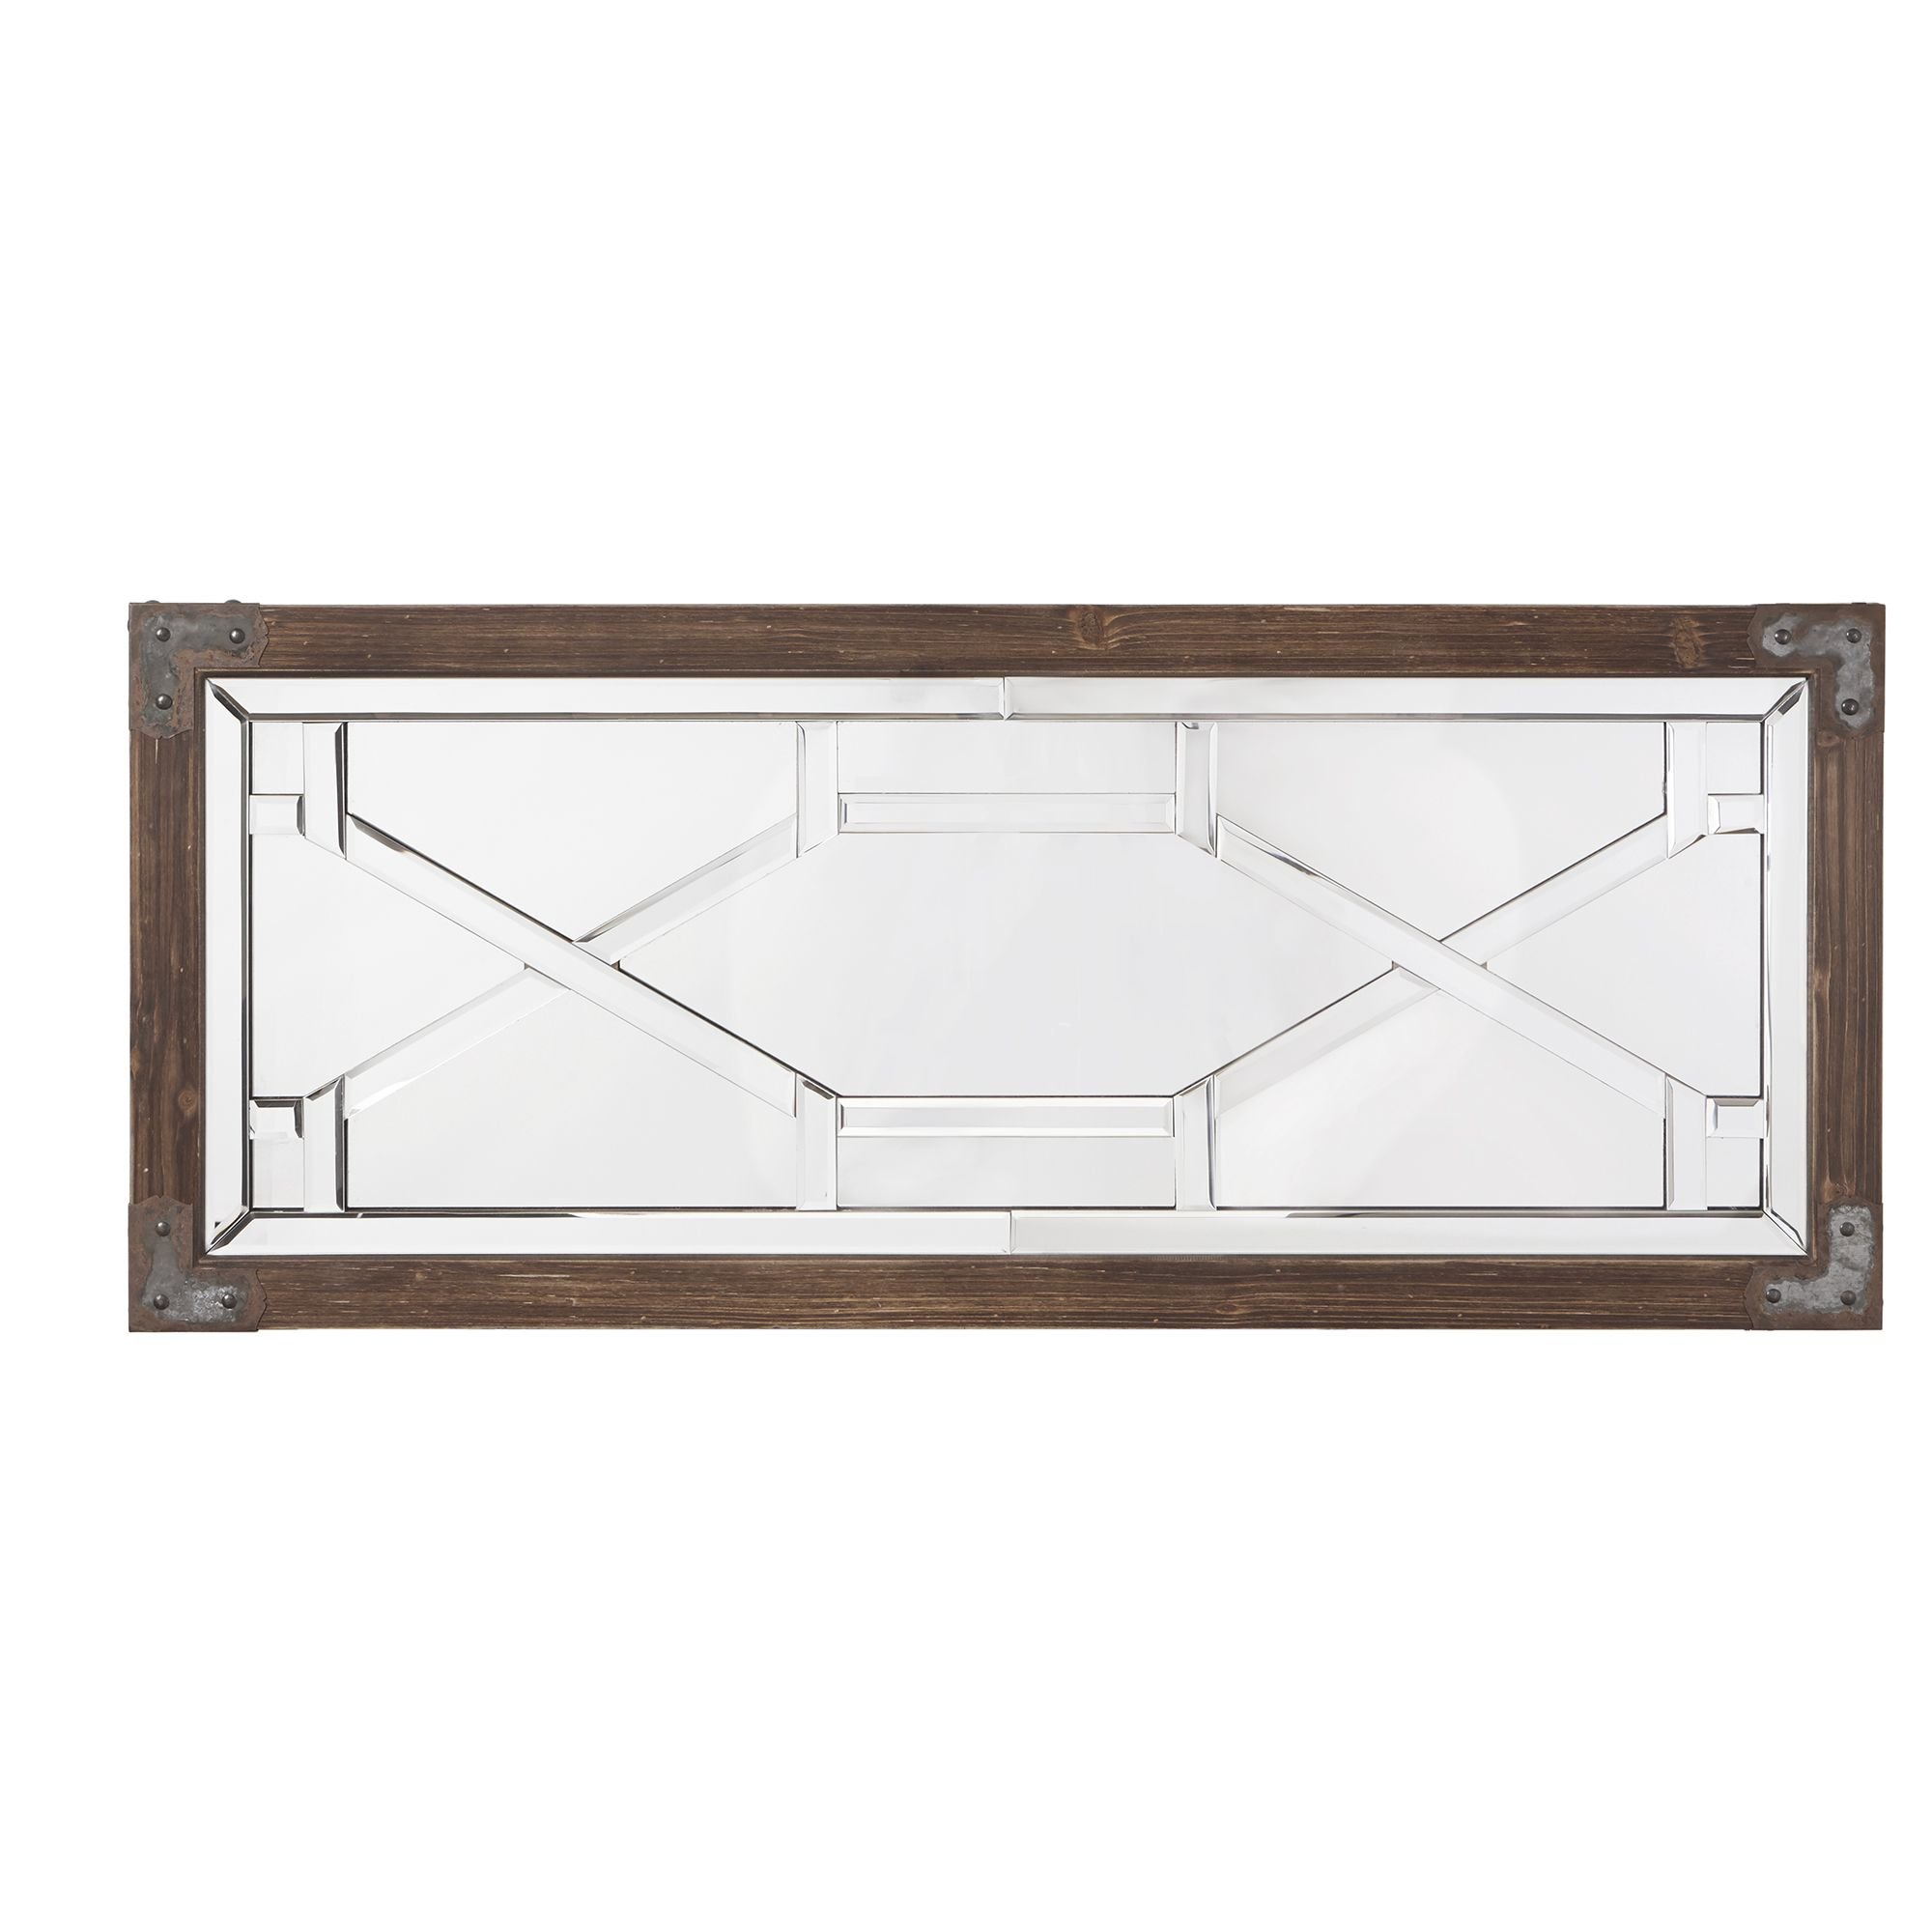 Choquette Modern And Contemporary Full Length Mirror For Koeller Industrial Metal Wall Mirrors (Image 3 of 20)